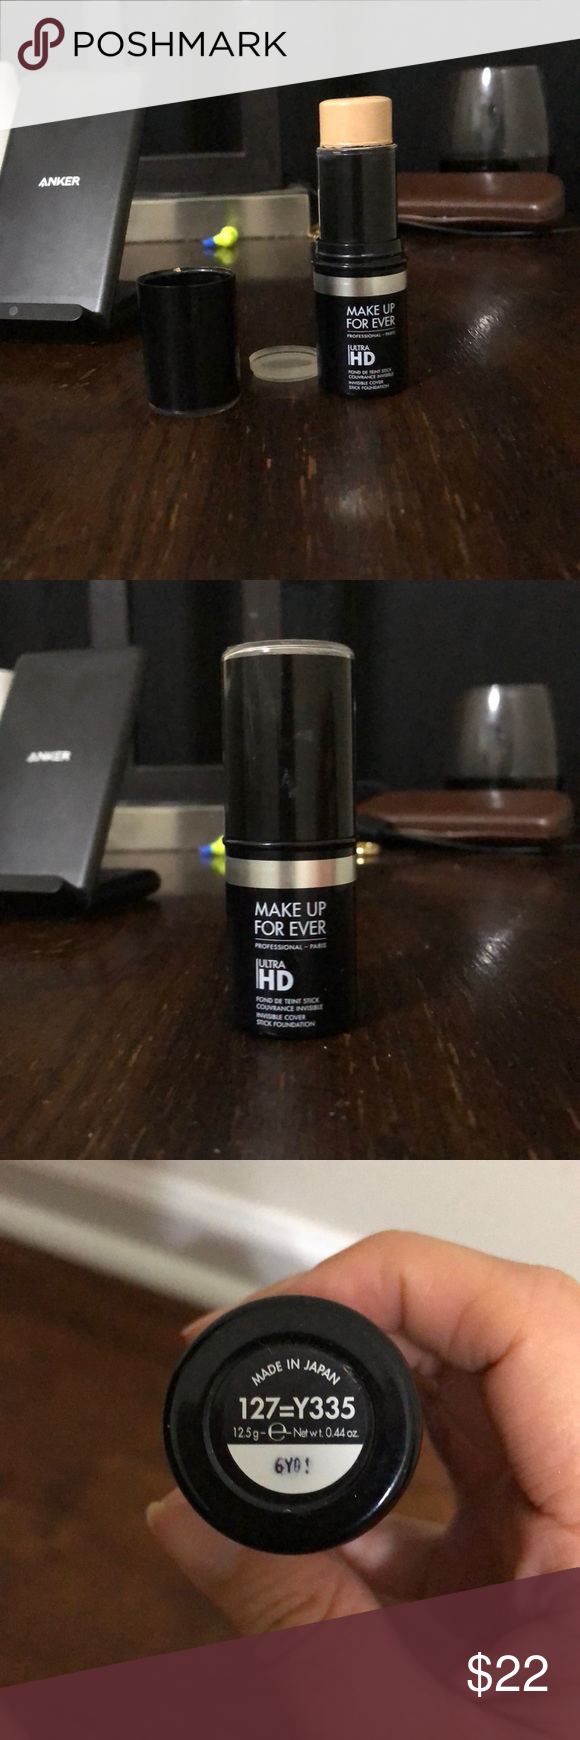 Make Up Forever Ultra HD Foundation Stick Shade 127=Y335